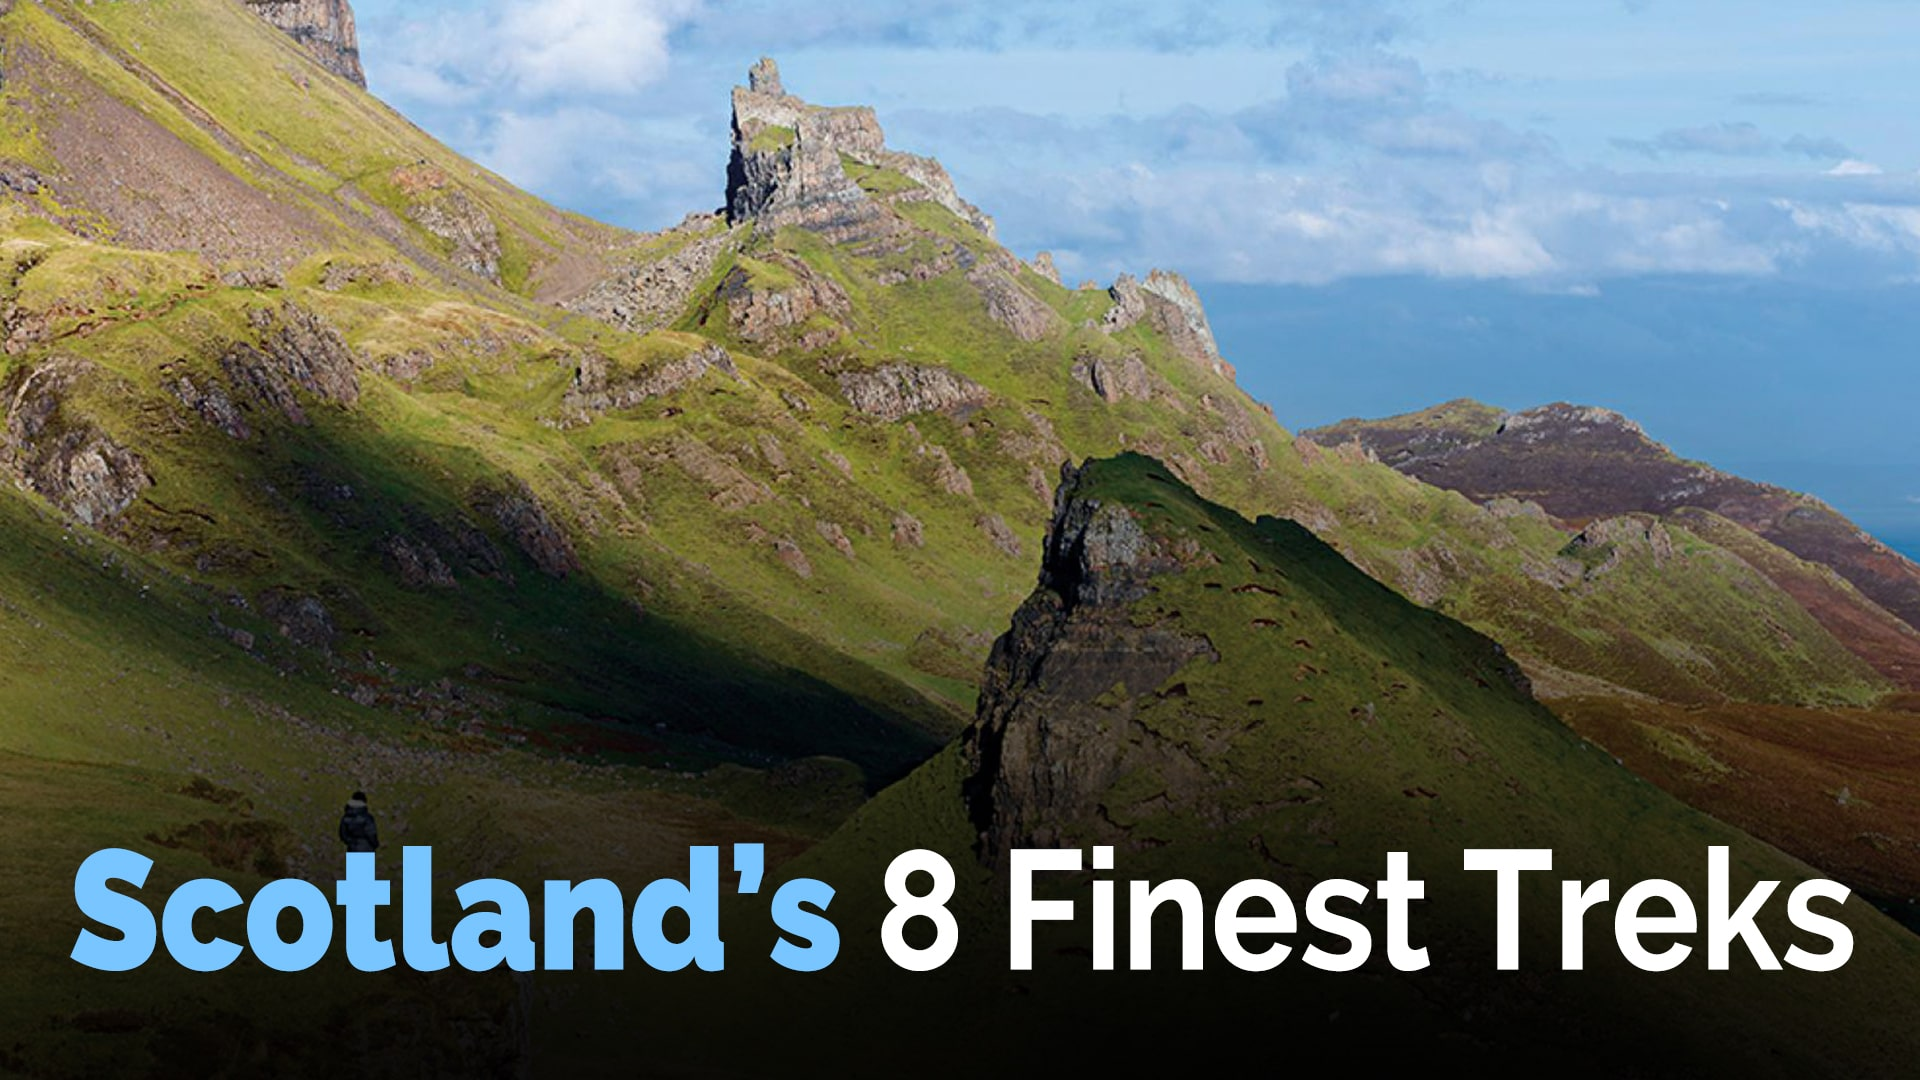 Scotlands 8 Finest Treks